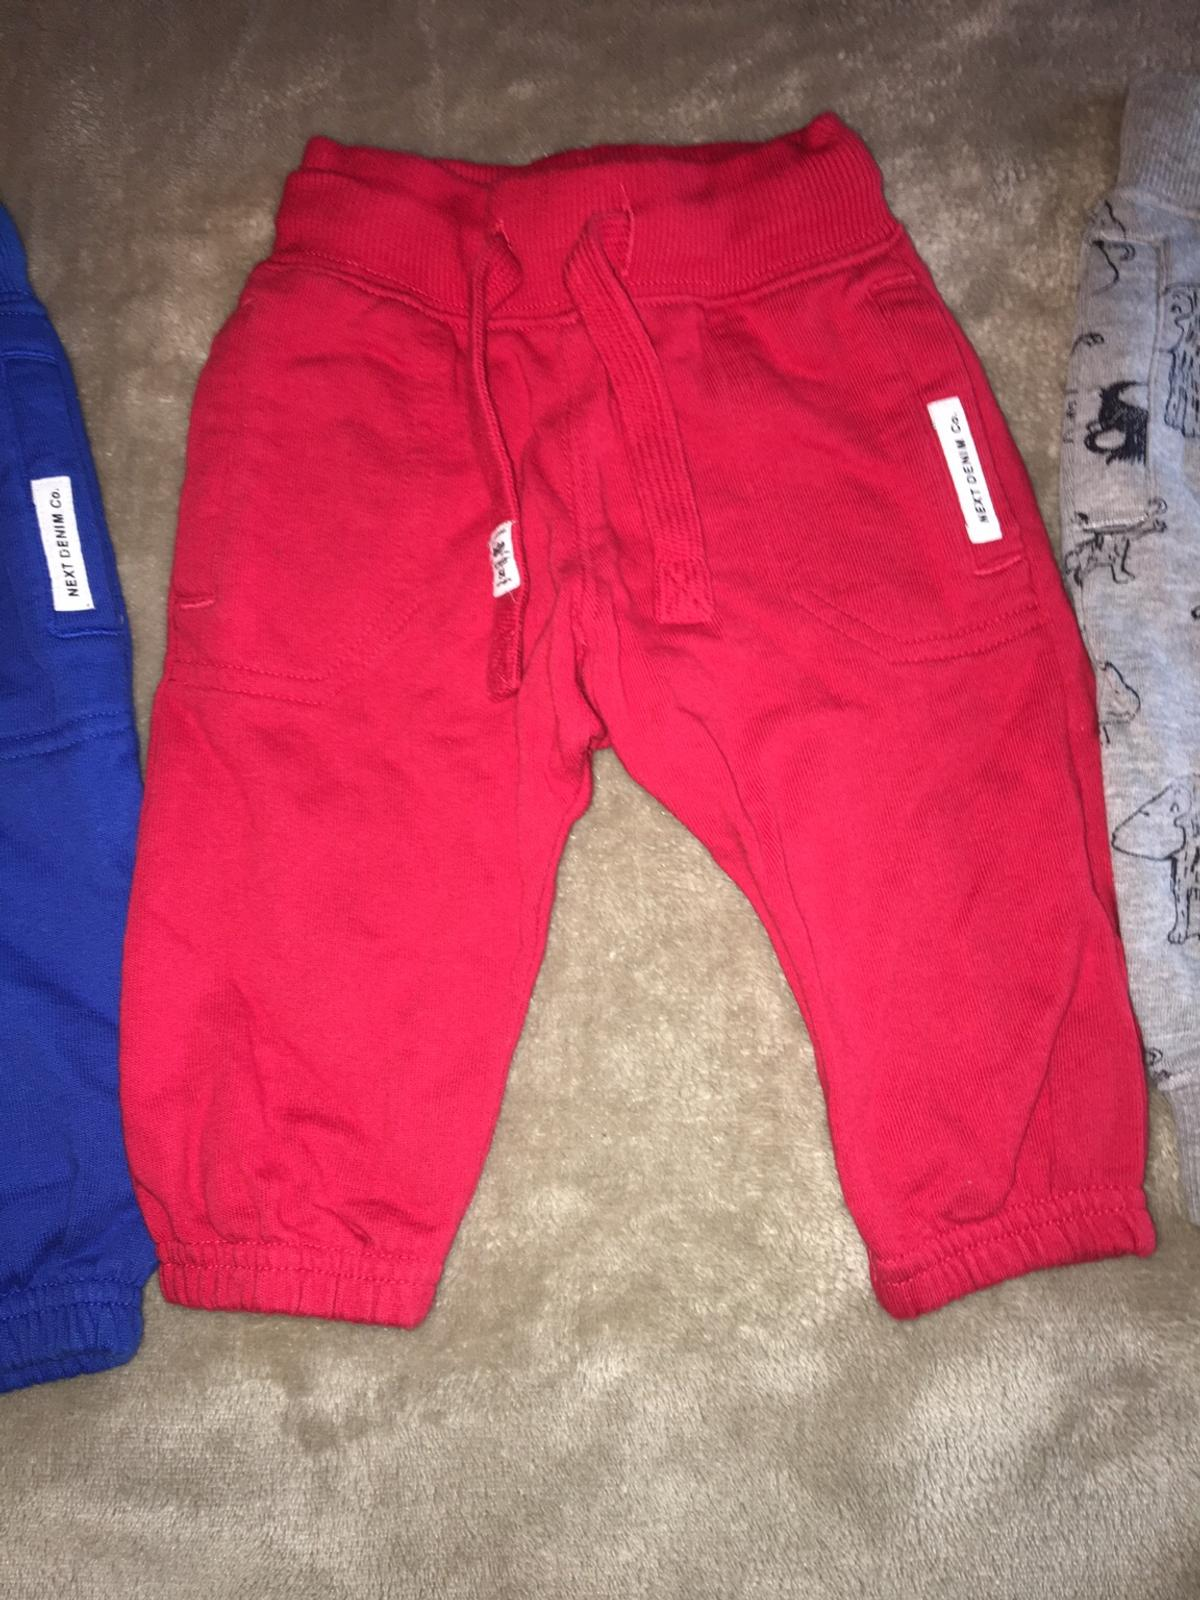 Boys' Clothing (newborn-5t) Baby Boy Next Joggers 6-9 Month Clothing, Shoes & Accessories